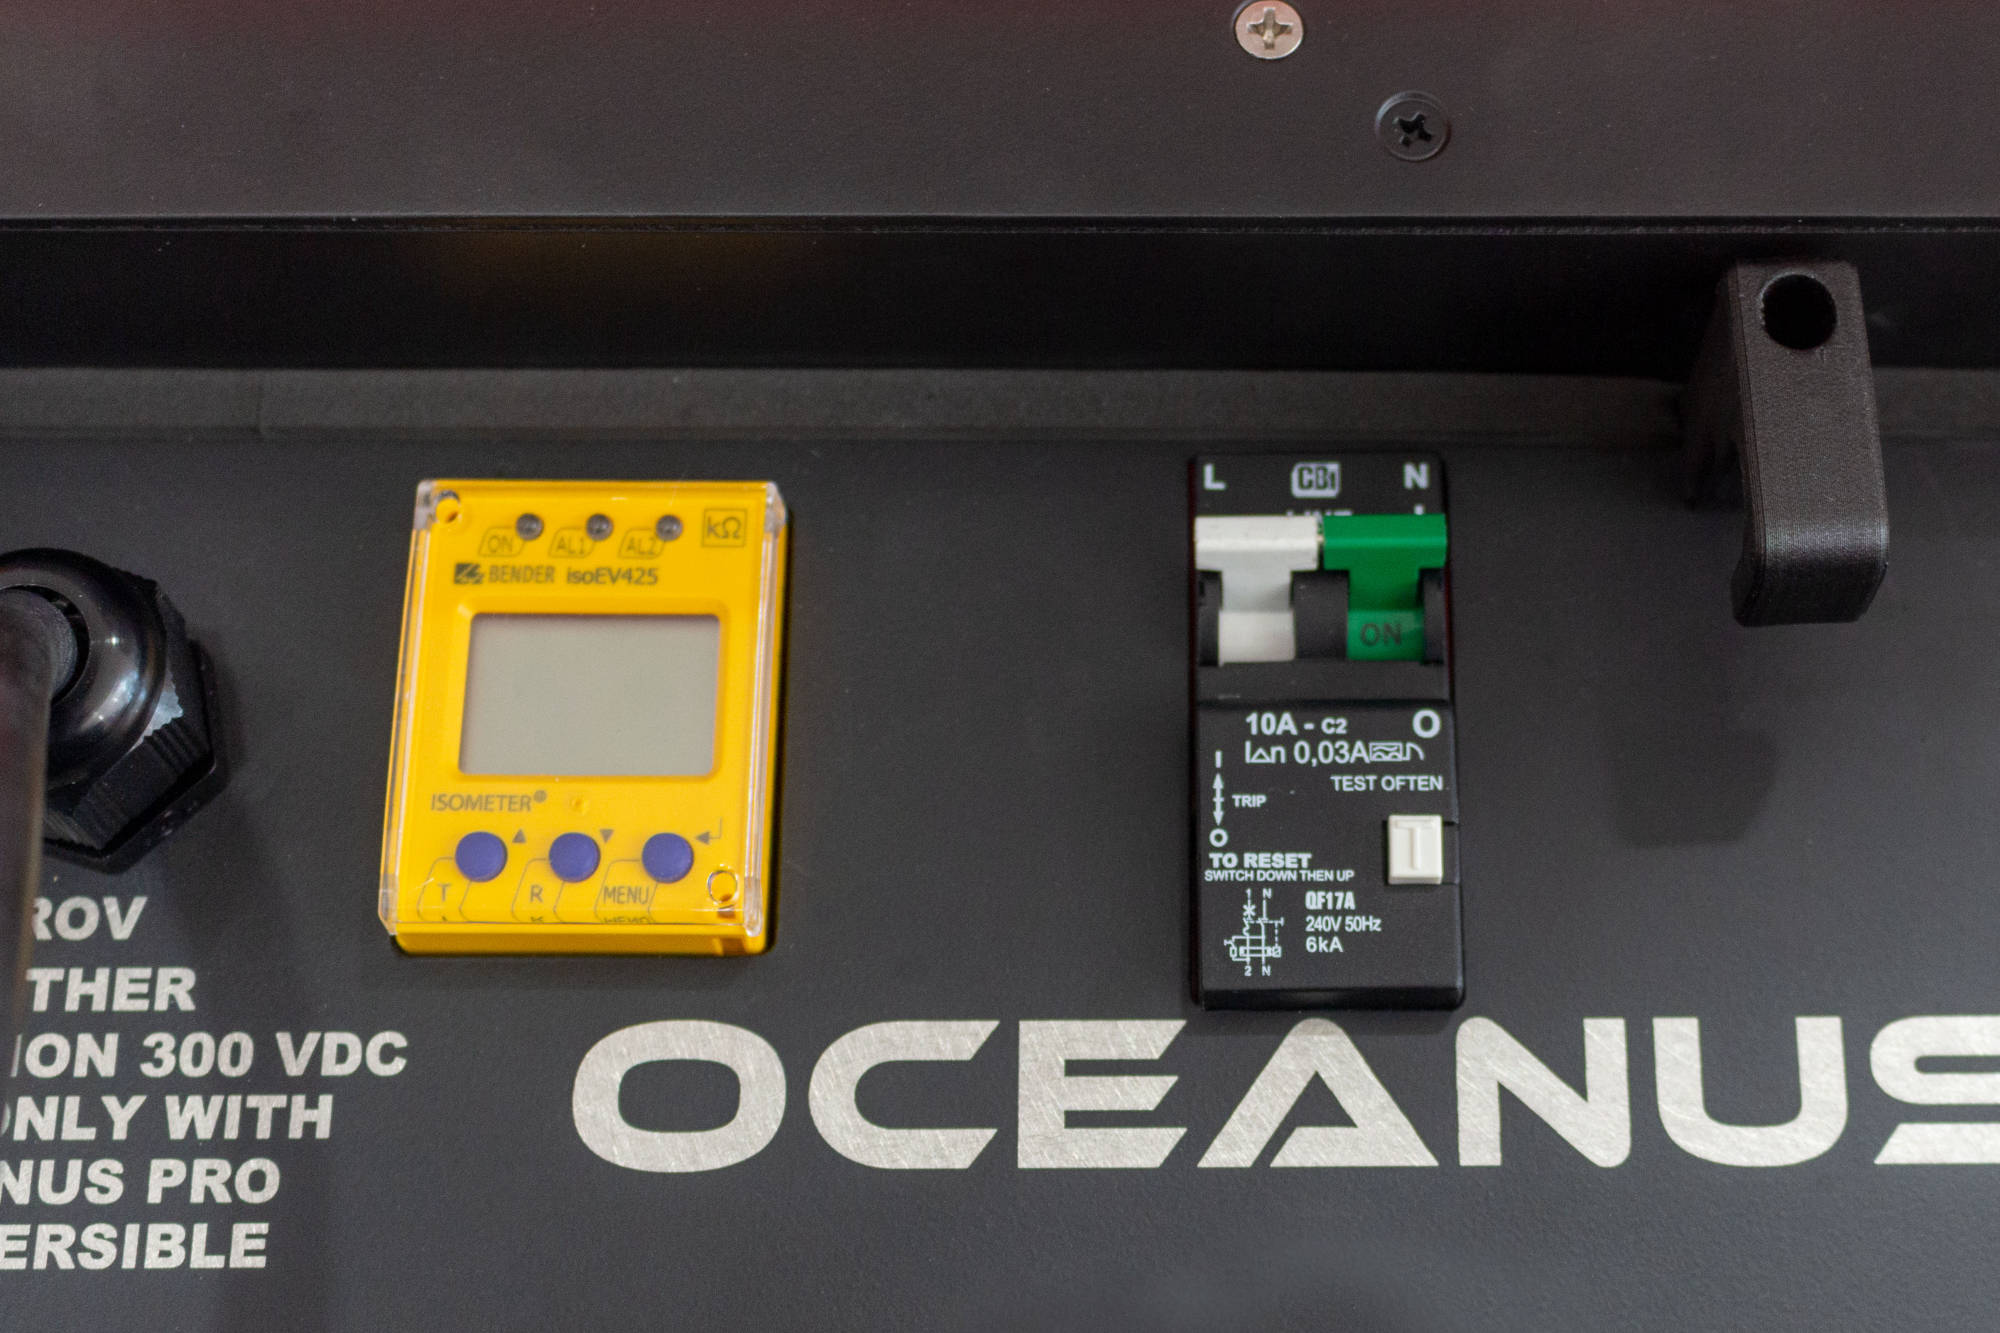 Oceanus Mini - built in safety features